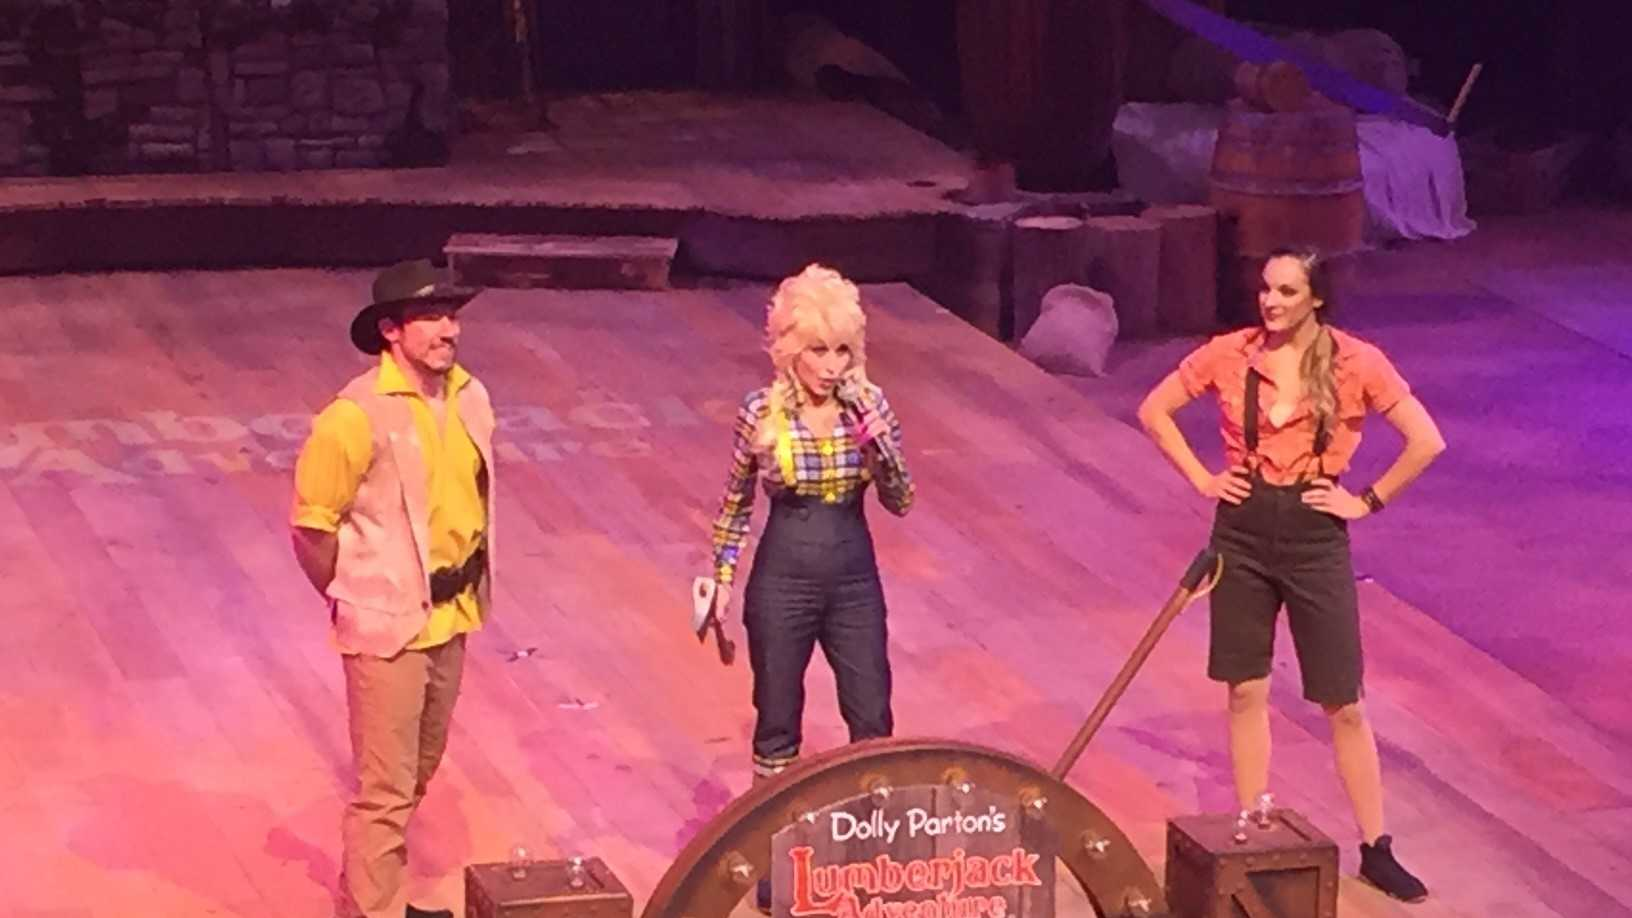 Dolly Parton opens her new attraction, Lumberjack Adventure, in Pigeon Forge.